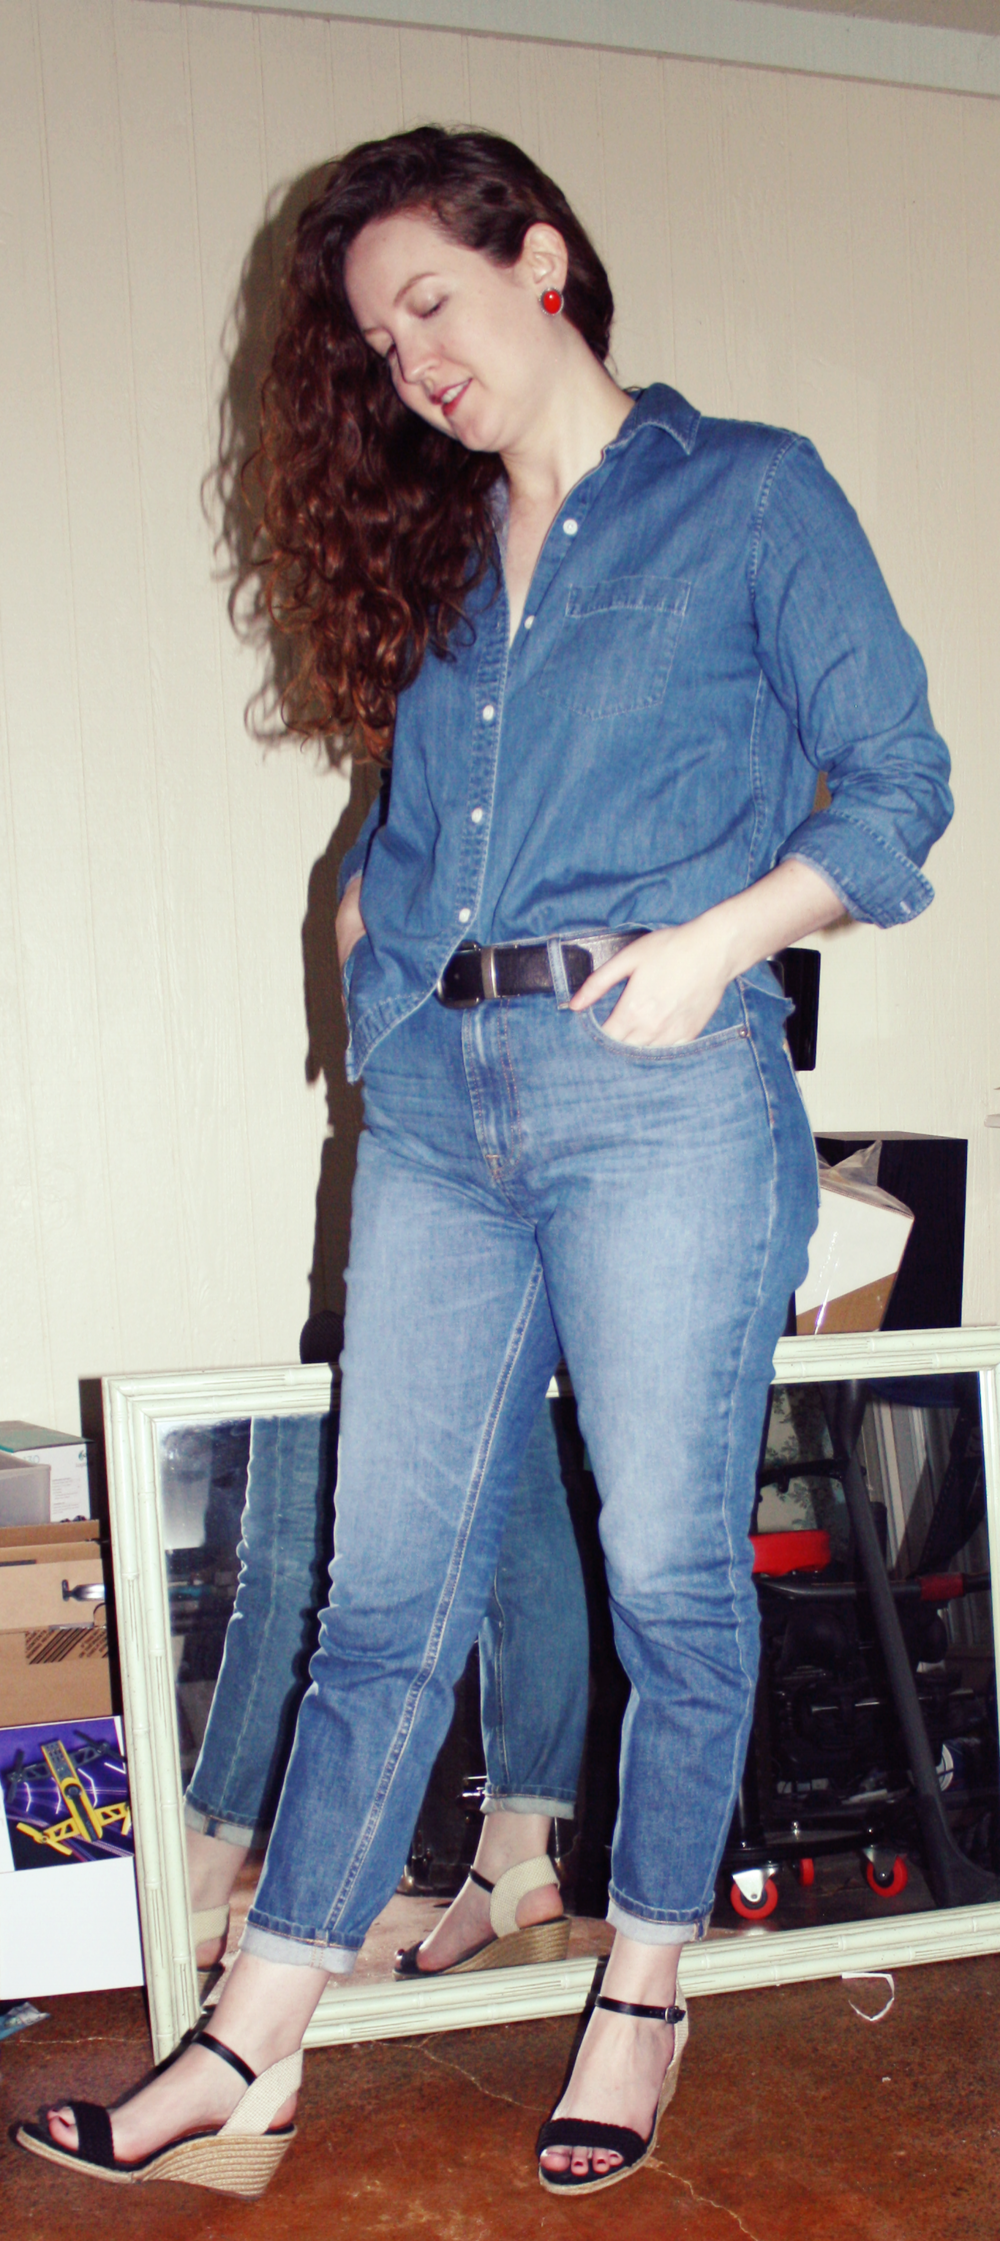 Grana Denim Shirt + Everlane Denim + Wedges